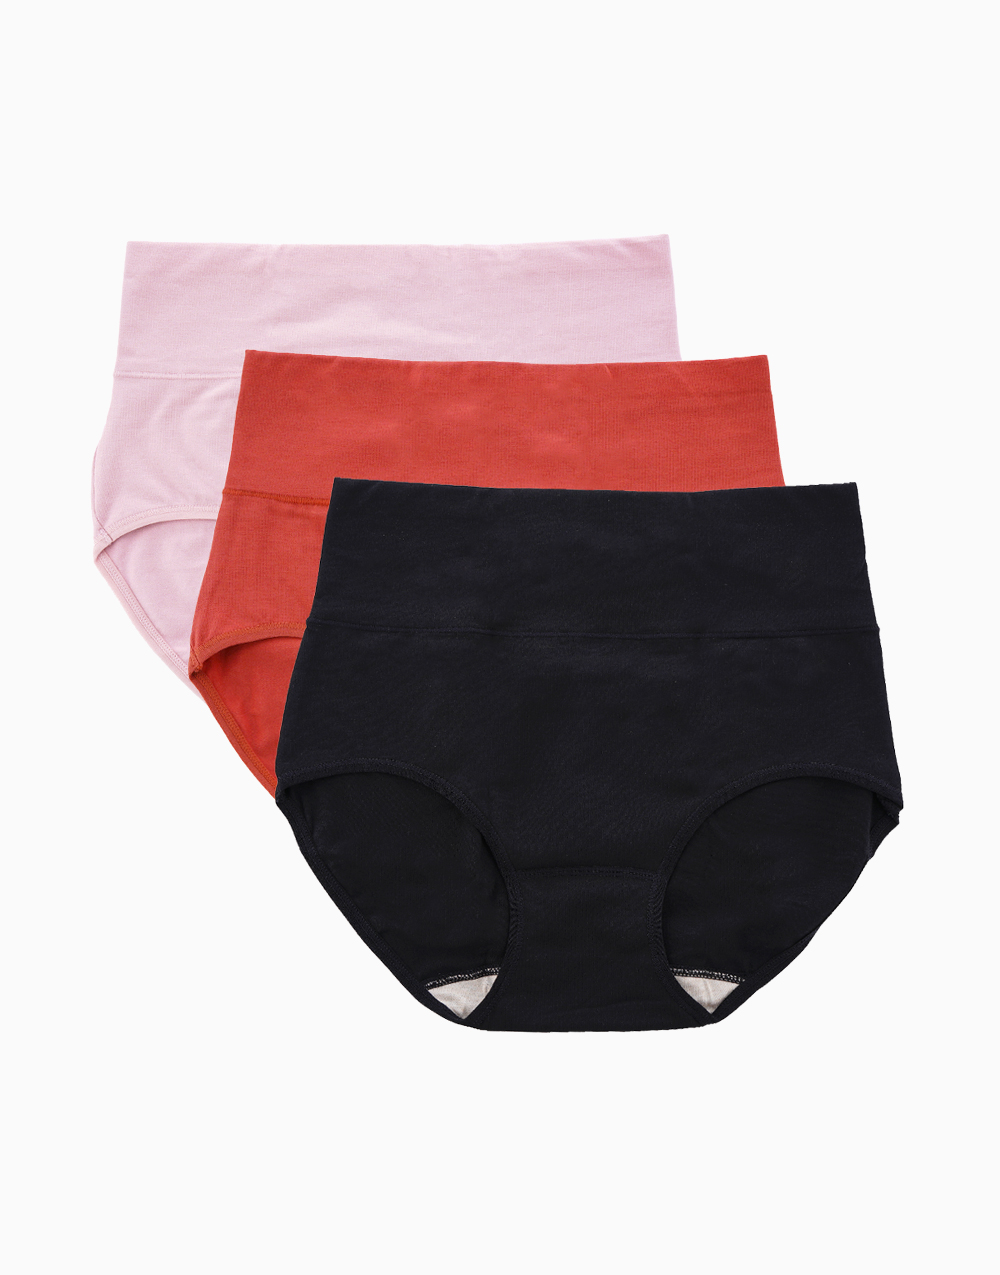 Belly Bikinis Mixed Color Set (Set of 3 High Rise Control Panties) by Jellyfit | XL